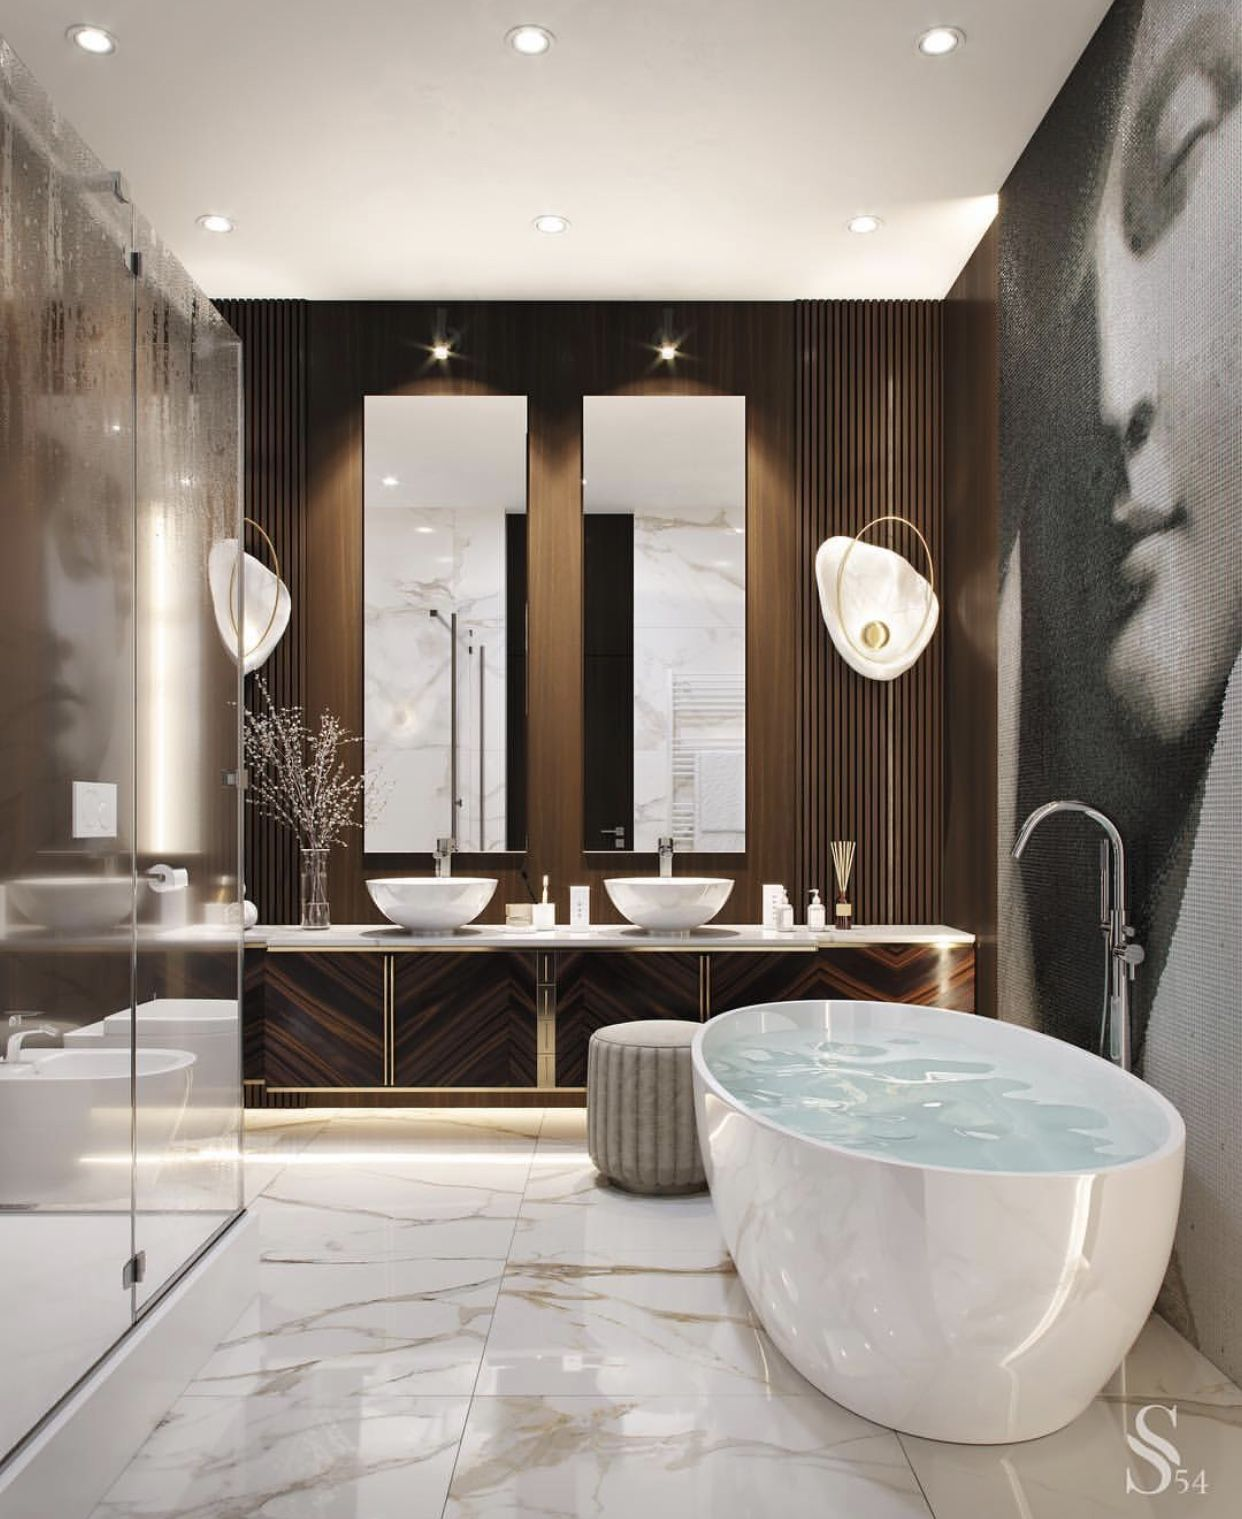 Want To Make A Stylish And Luxurious Bathroom Find What Is Trending By Covet Group Interior Design Glamorous Bathroom Bathroom Design Luxury Luxury Bathroom